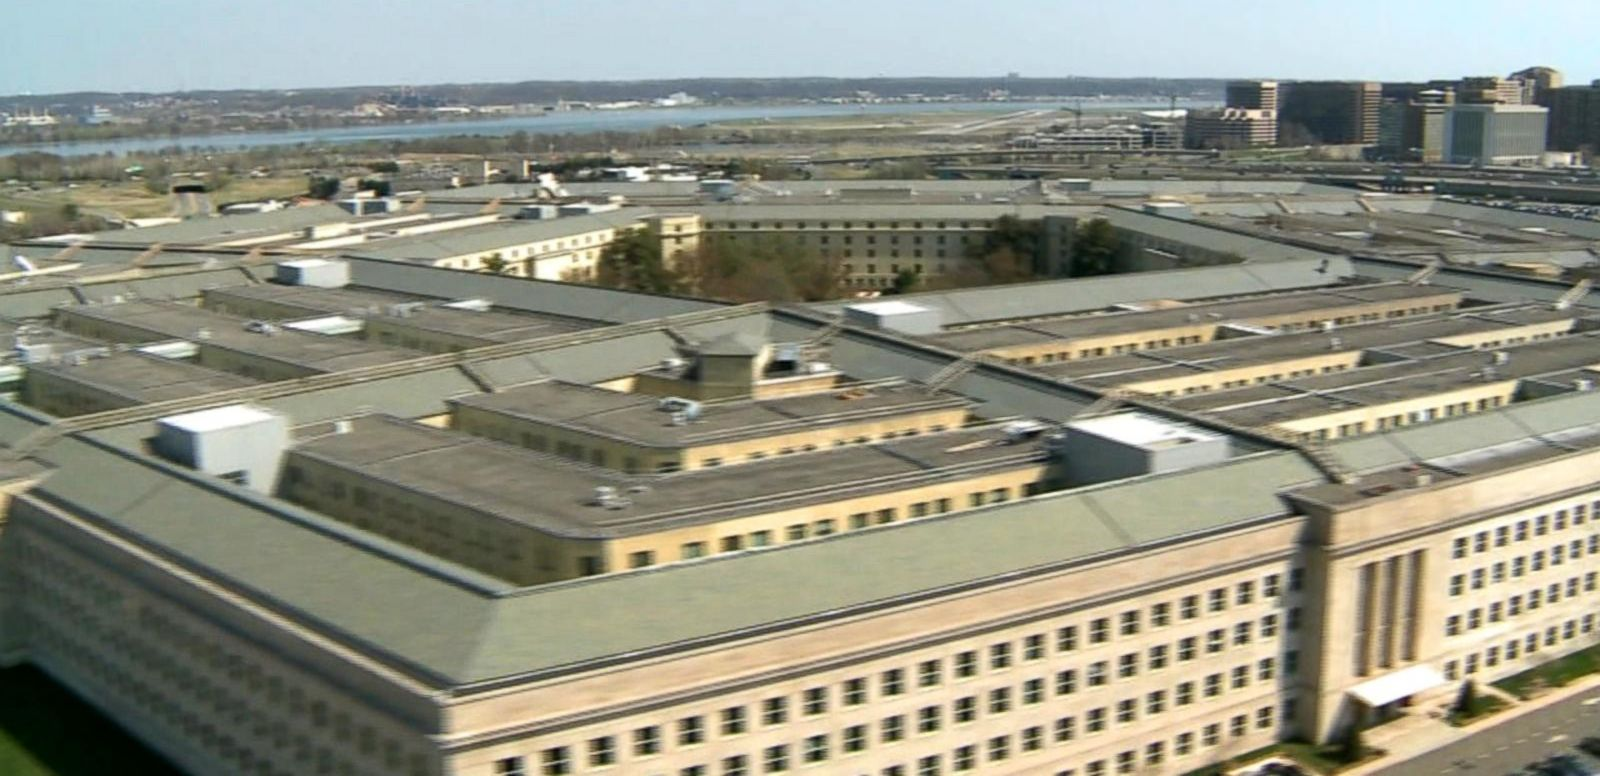 VIDEO: Top Military Leaders Email Accessed by Unknown Hackers